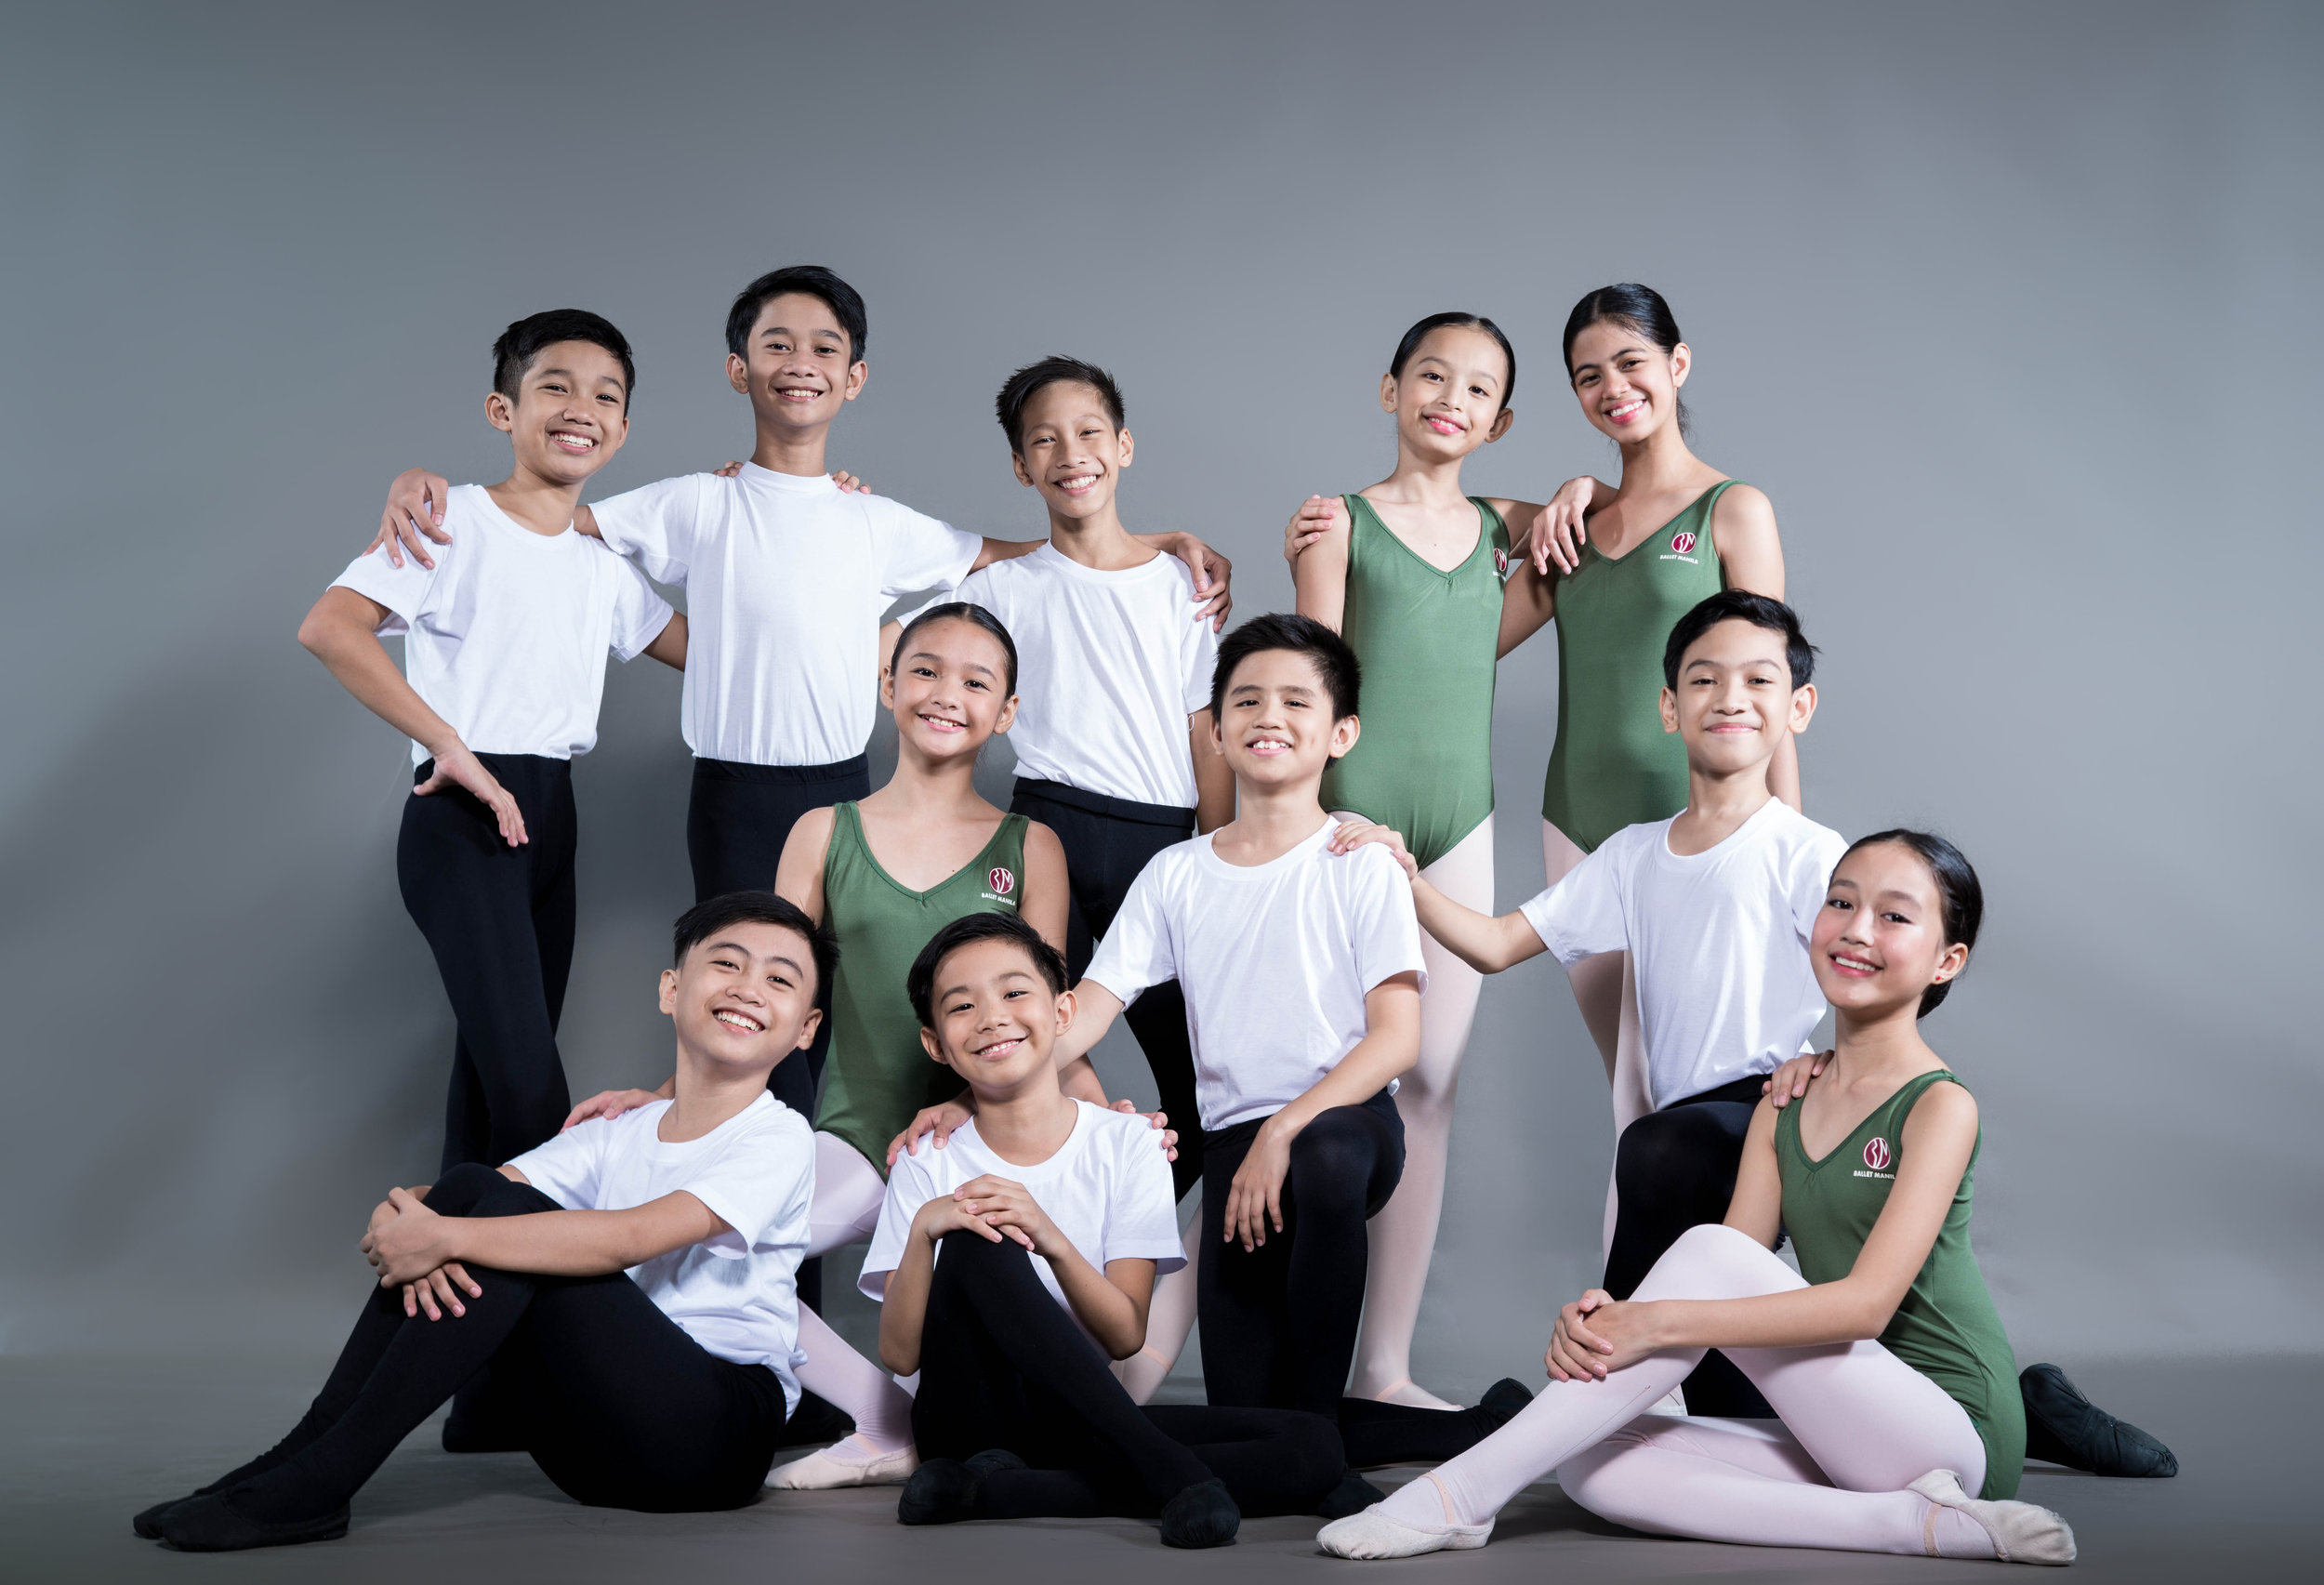 Project Ballet Futures makes ballet education accessible to boys and girls who otherwise would not be able to afford it.